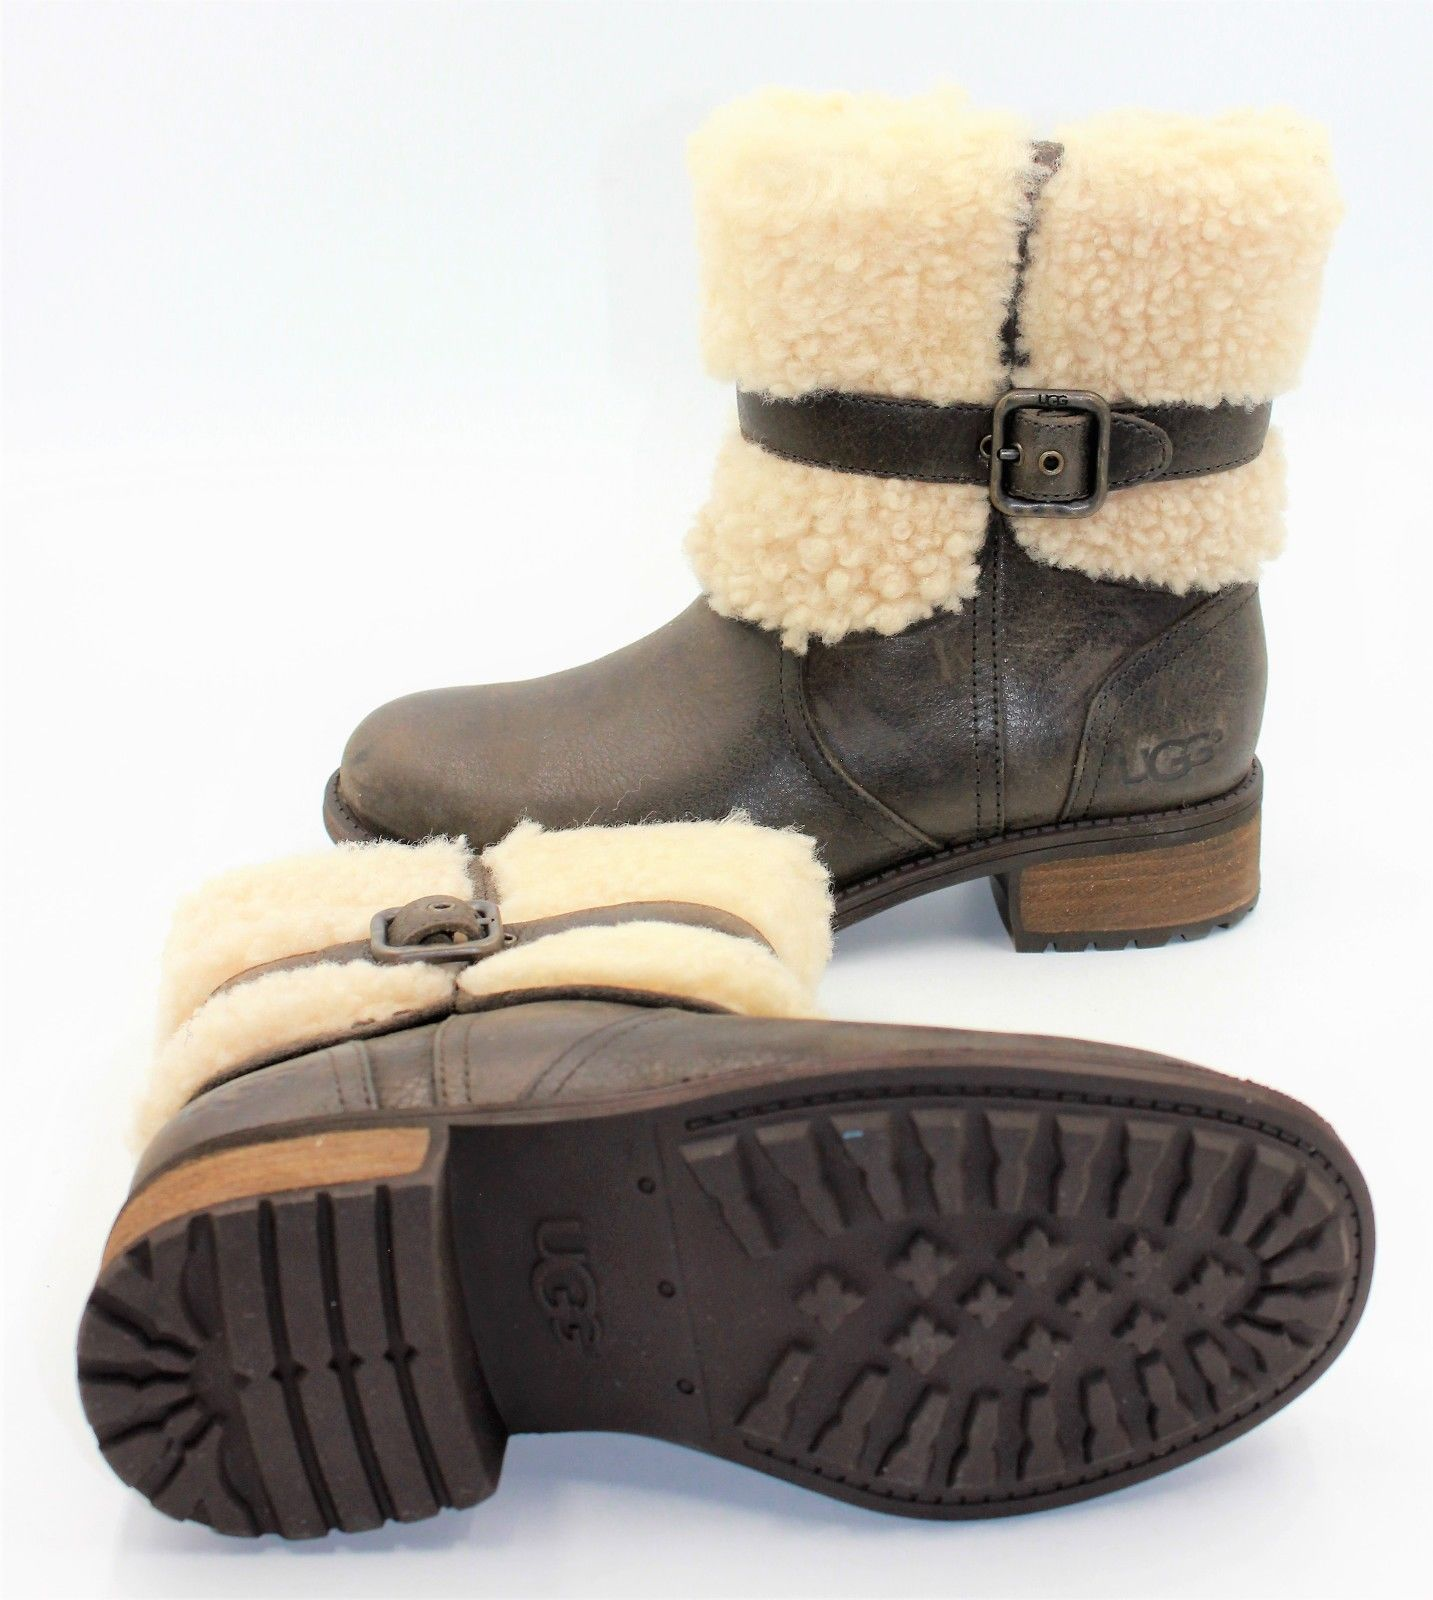 0109d8cede7 UGG Blayre II Women's Winter Boot - Lodge and 50 similar items